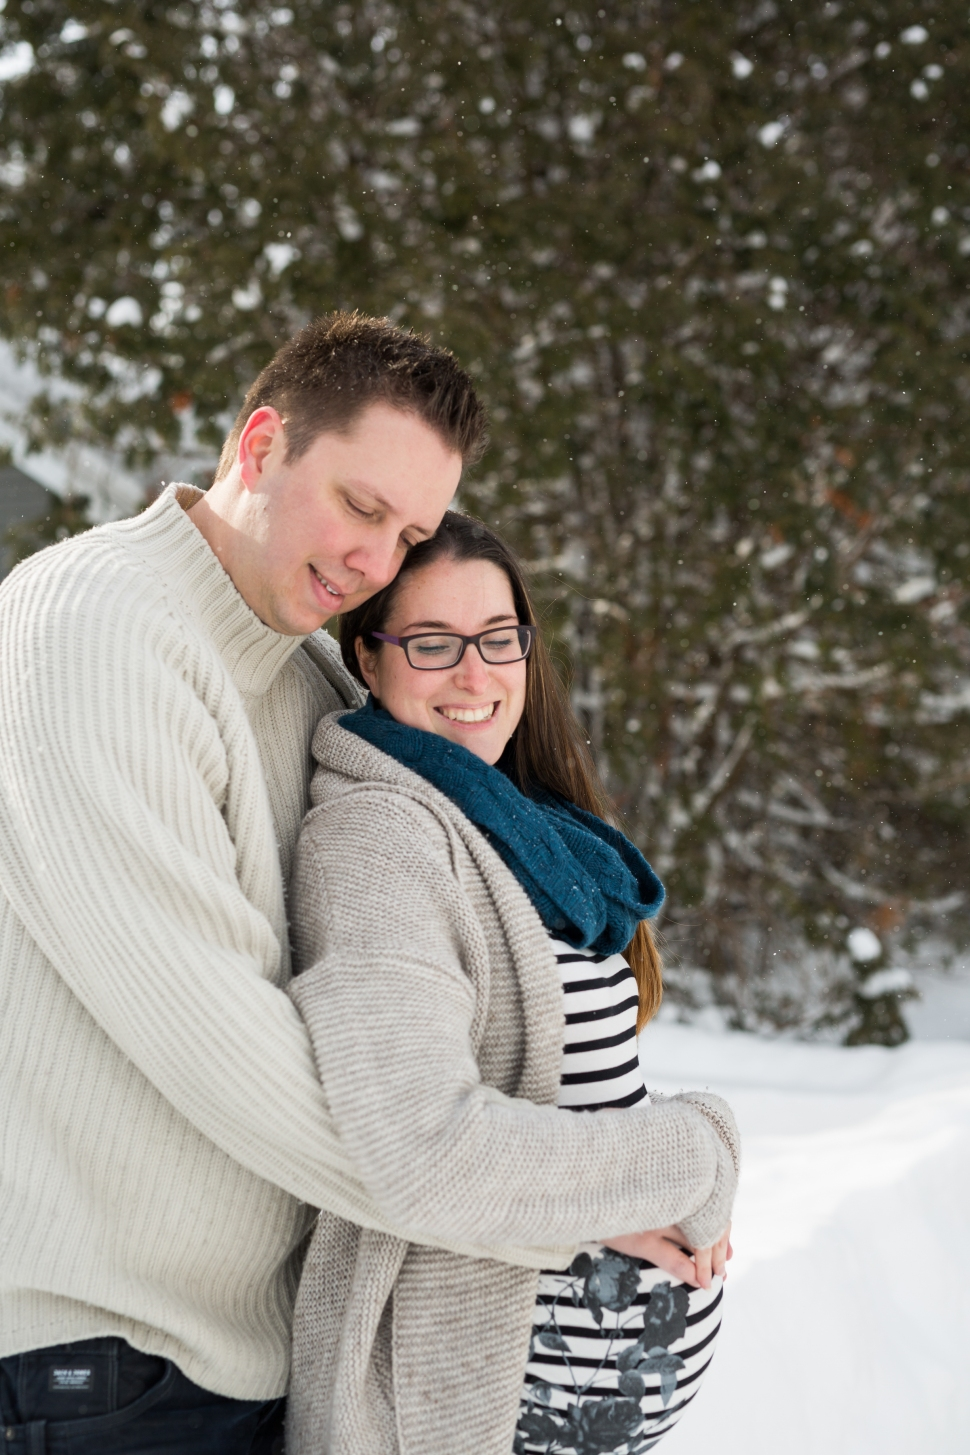 montreal_lifestyle_maternity_family_photographer_photography_photographe_famille_maternite-9